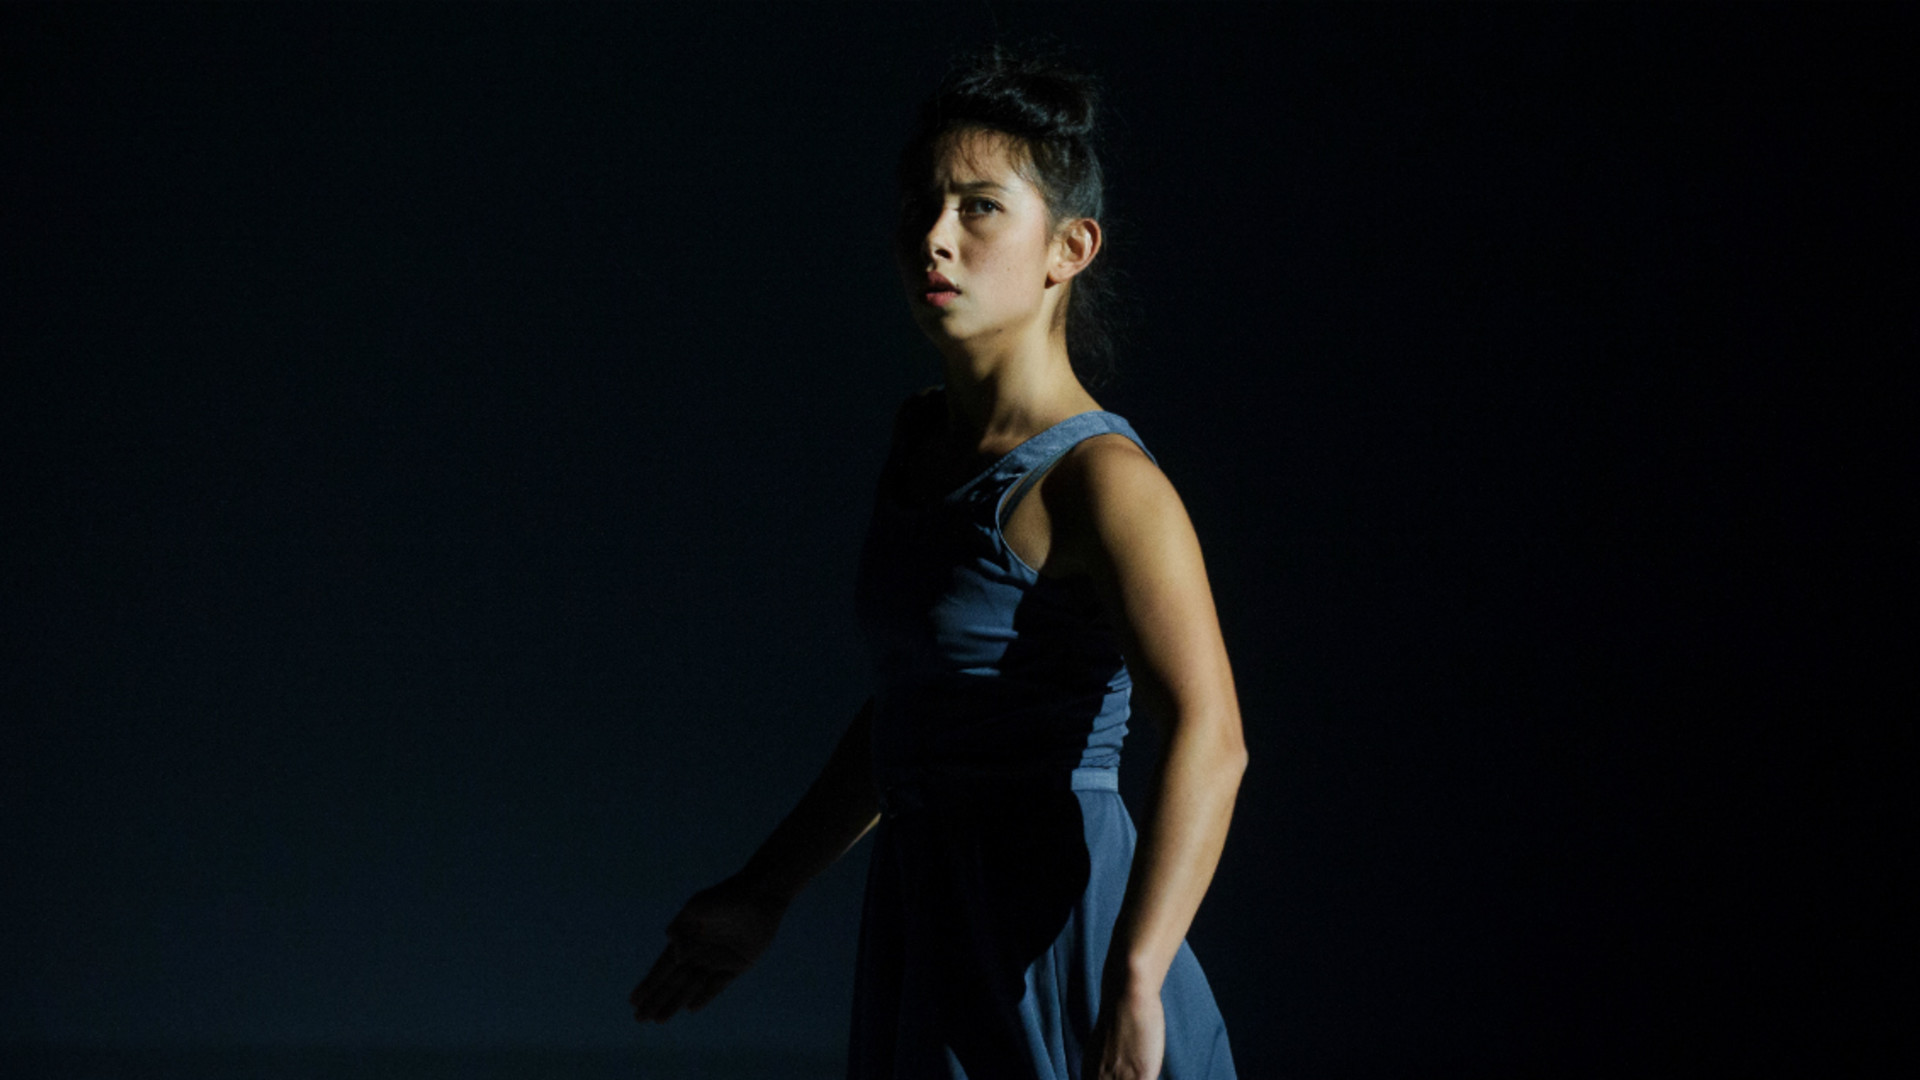 A dancer stands with her arms by her side looking out.